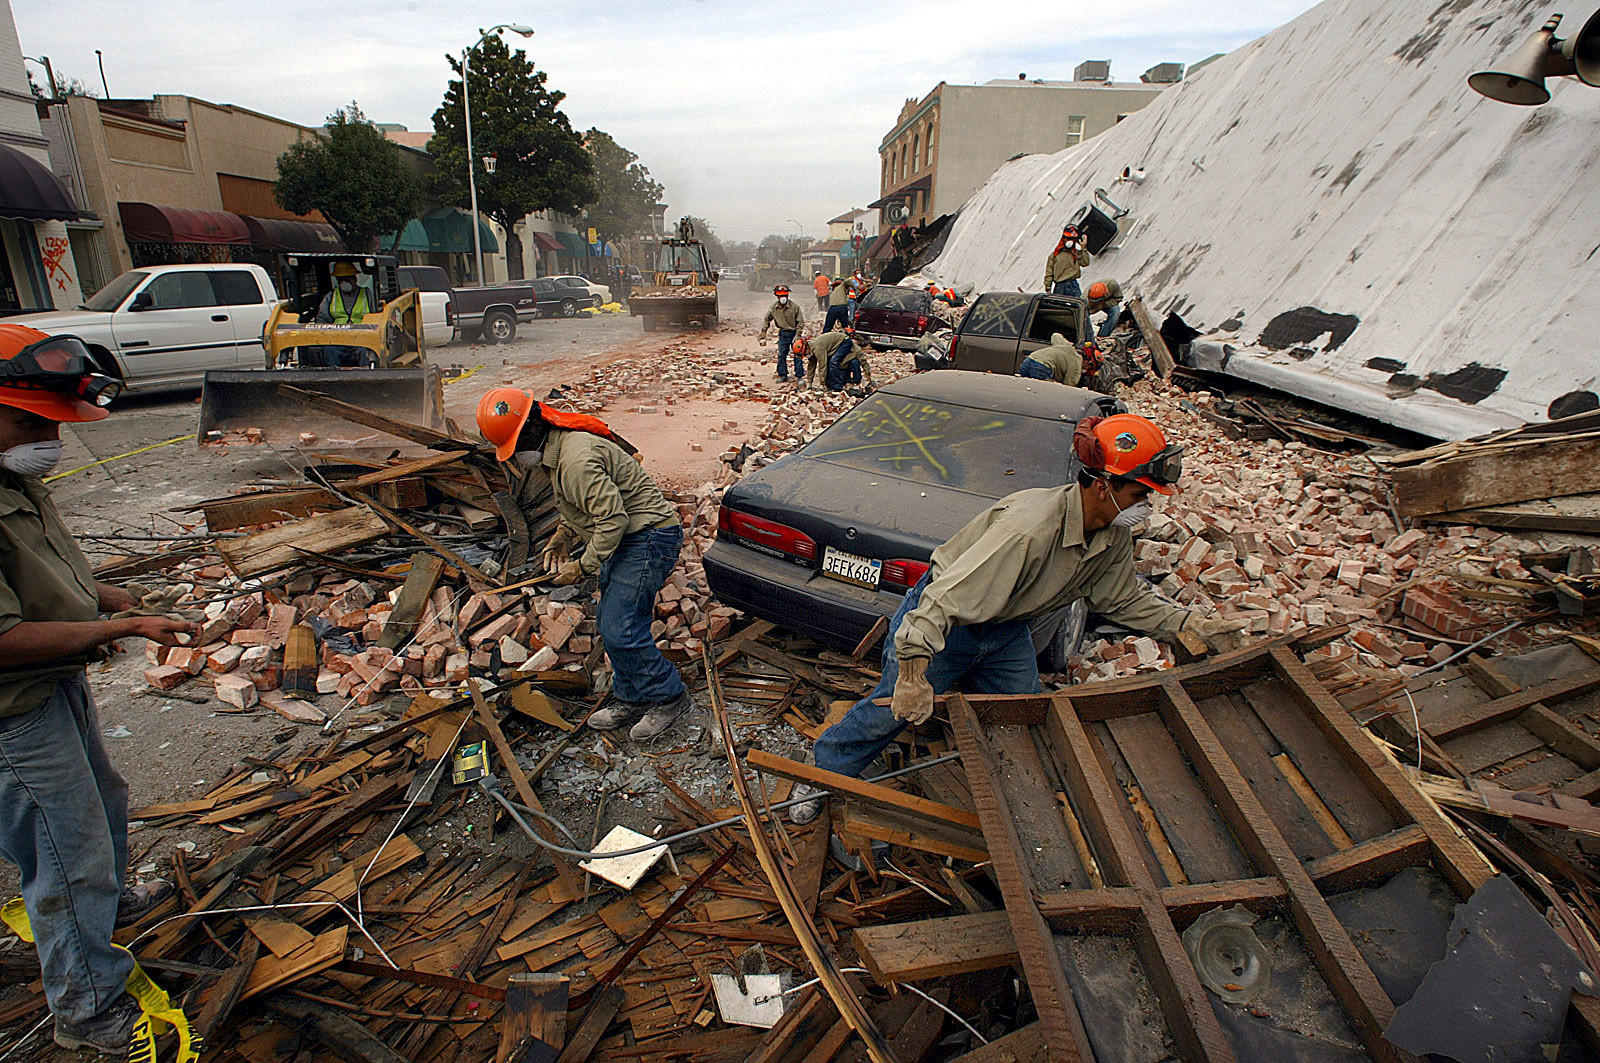 Rescue workers sift through debris in the wake of the 2003 Paso Robles earthquake.